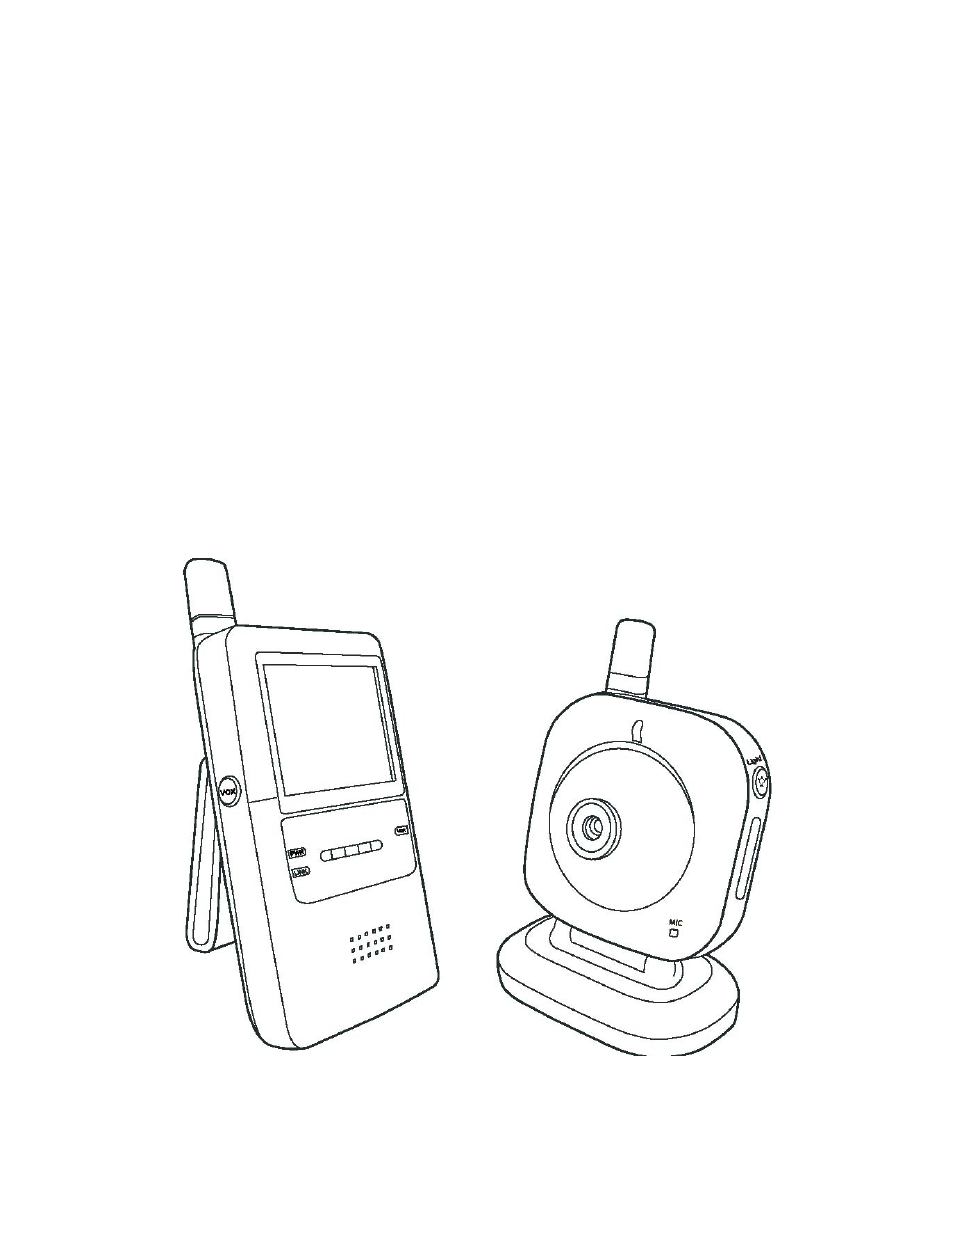 Service Manual - Baby Monitors - RF-Link Technology ABM-4161